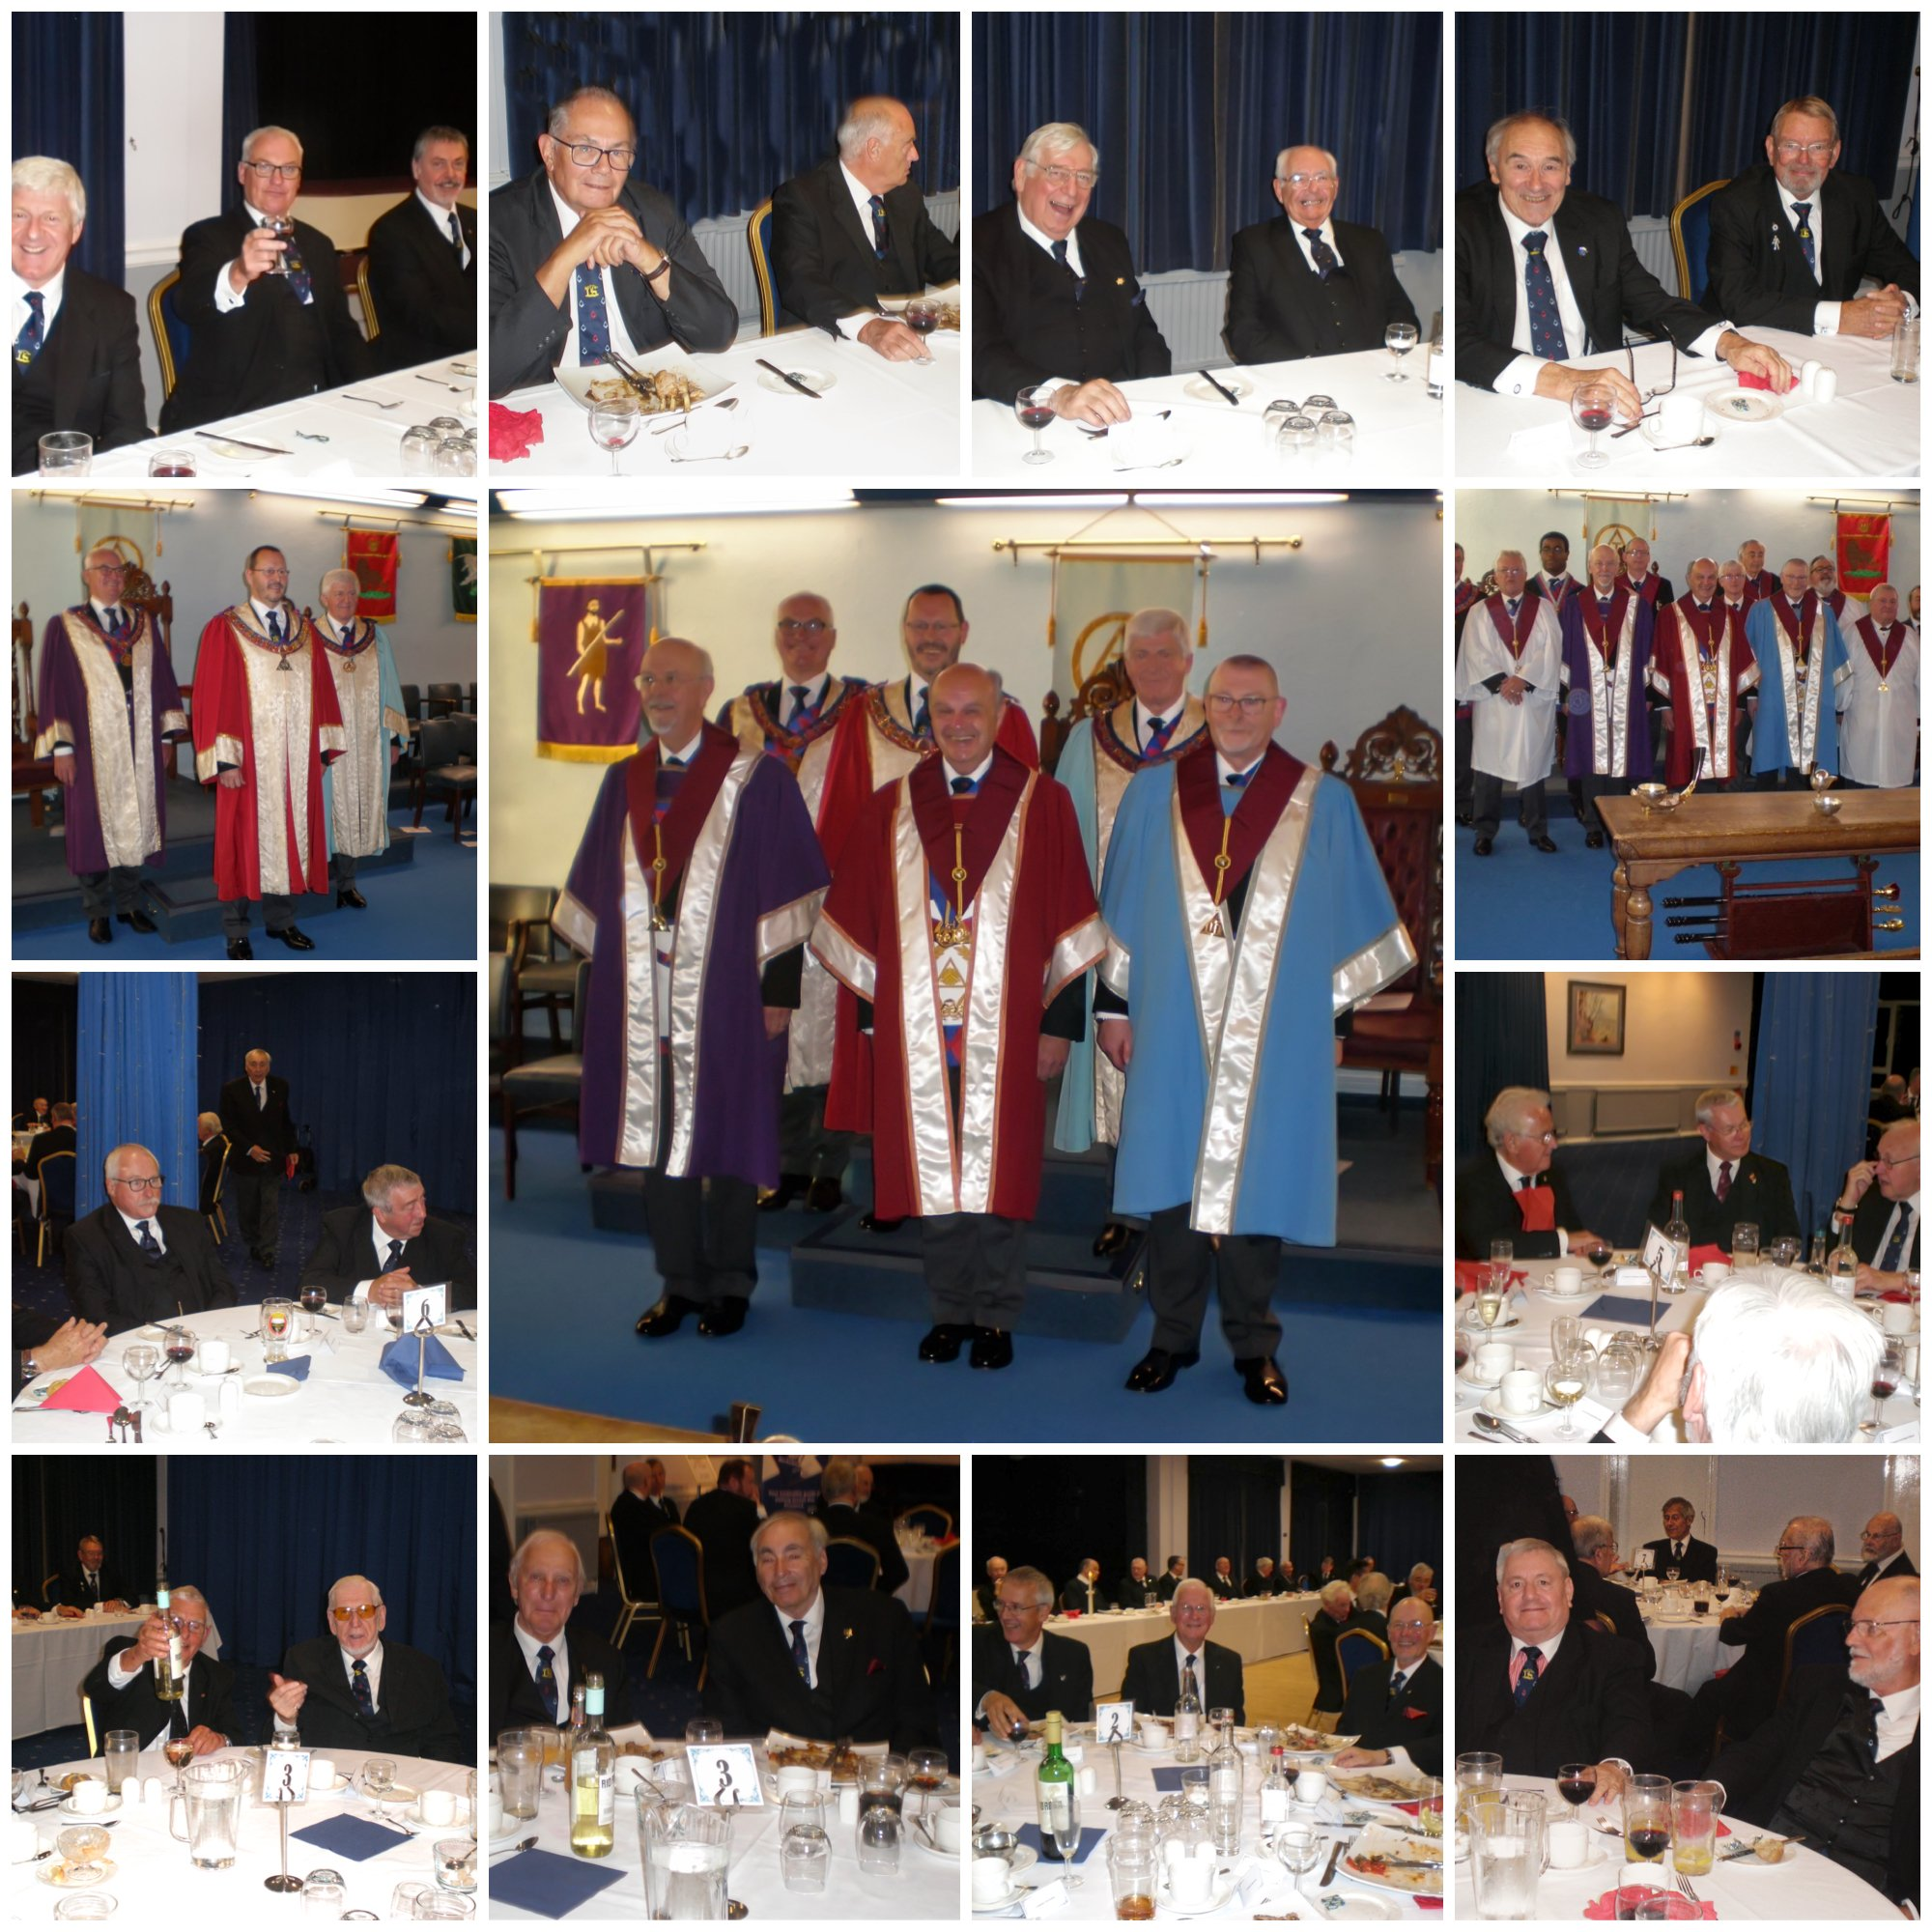 Photos from the Consecration